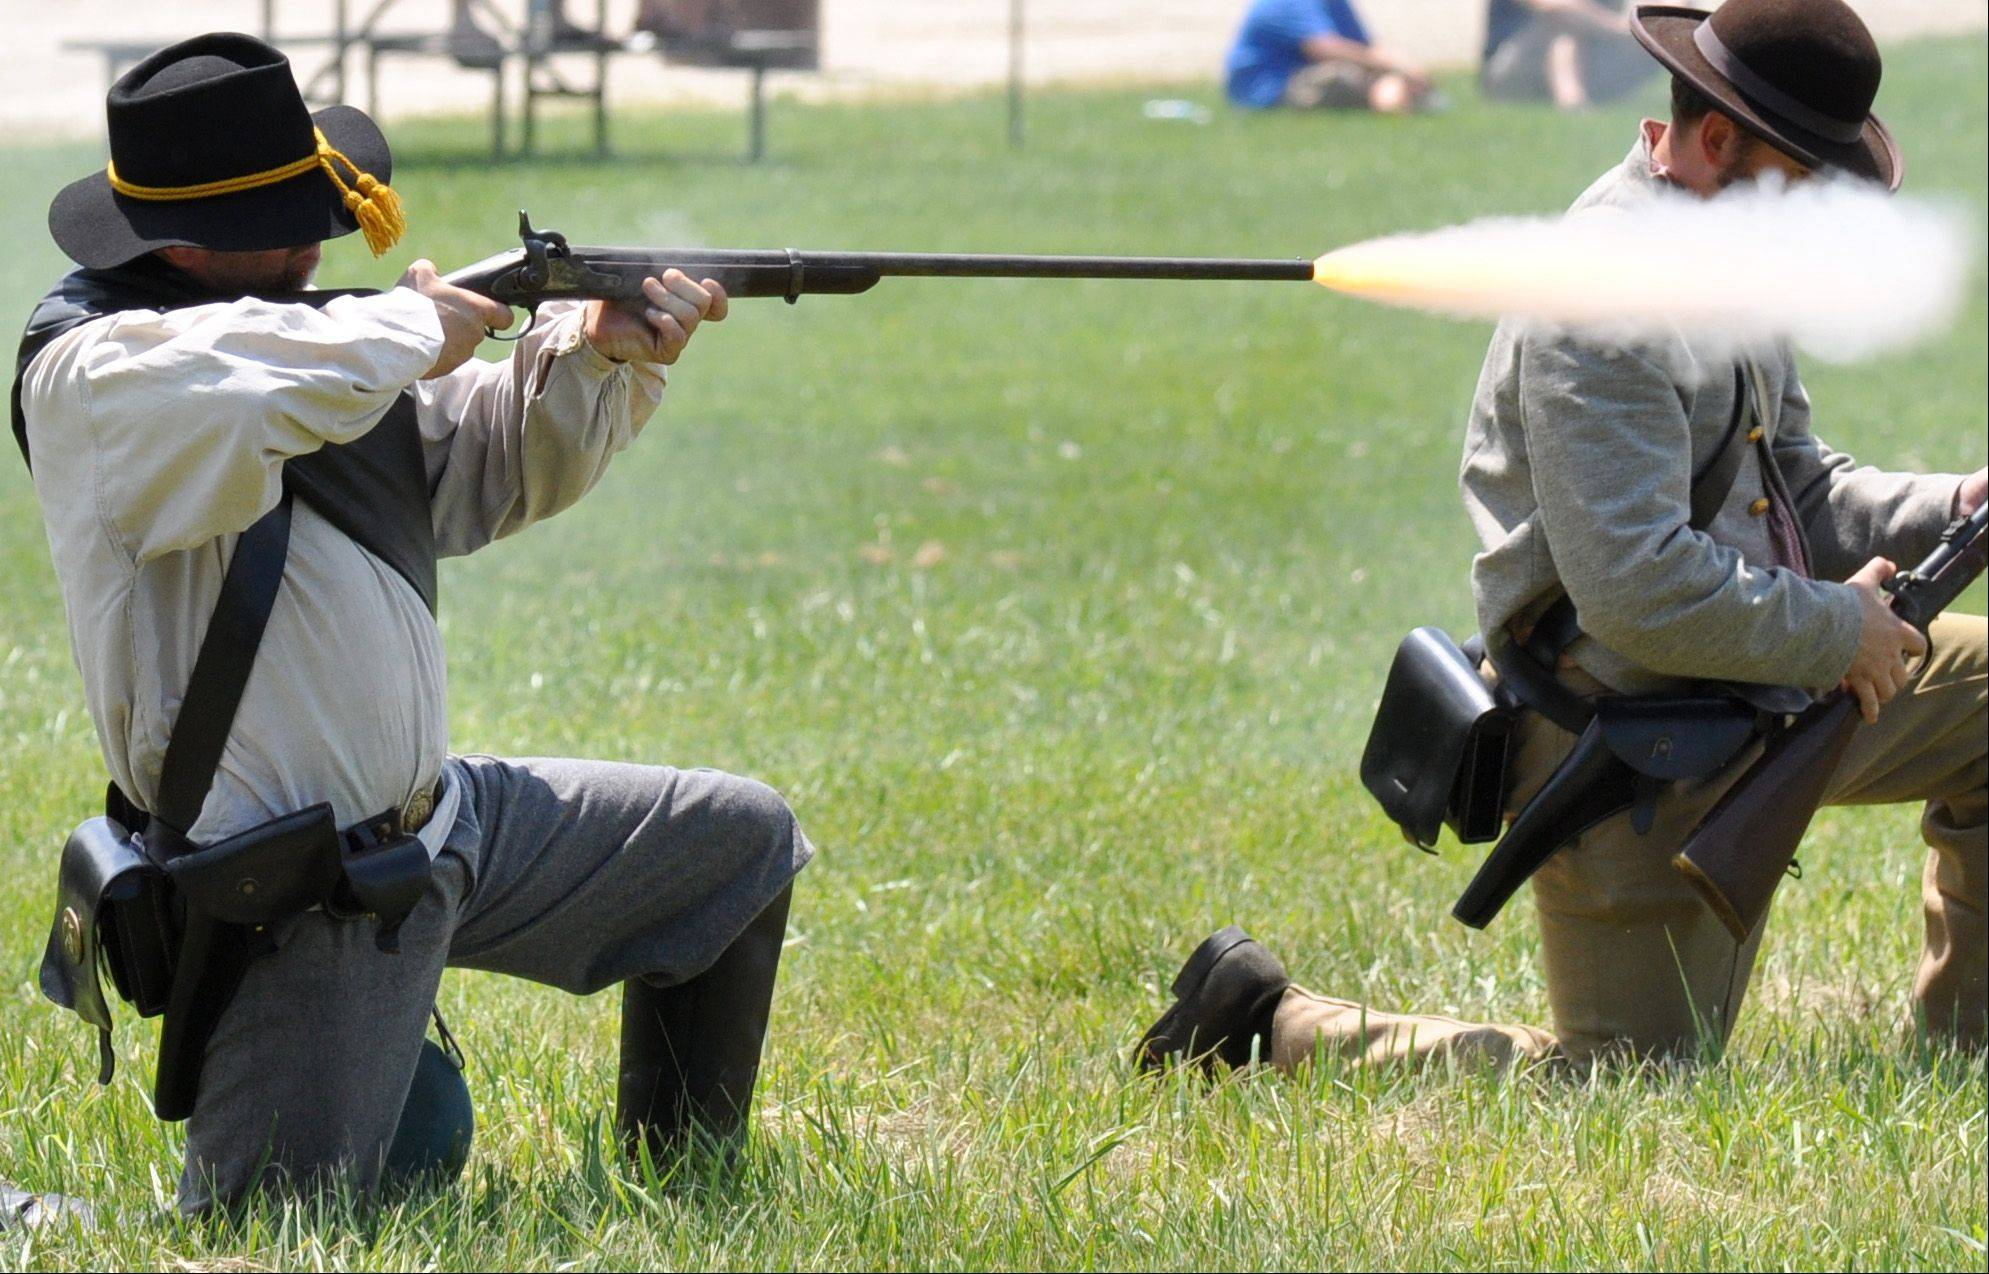 A Confederate soldier fires upon the Union Calvary during a battle re-enactment Sunday at Civil War Days at the Lakewood Forest Preserve near Wauconda.